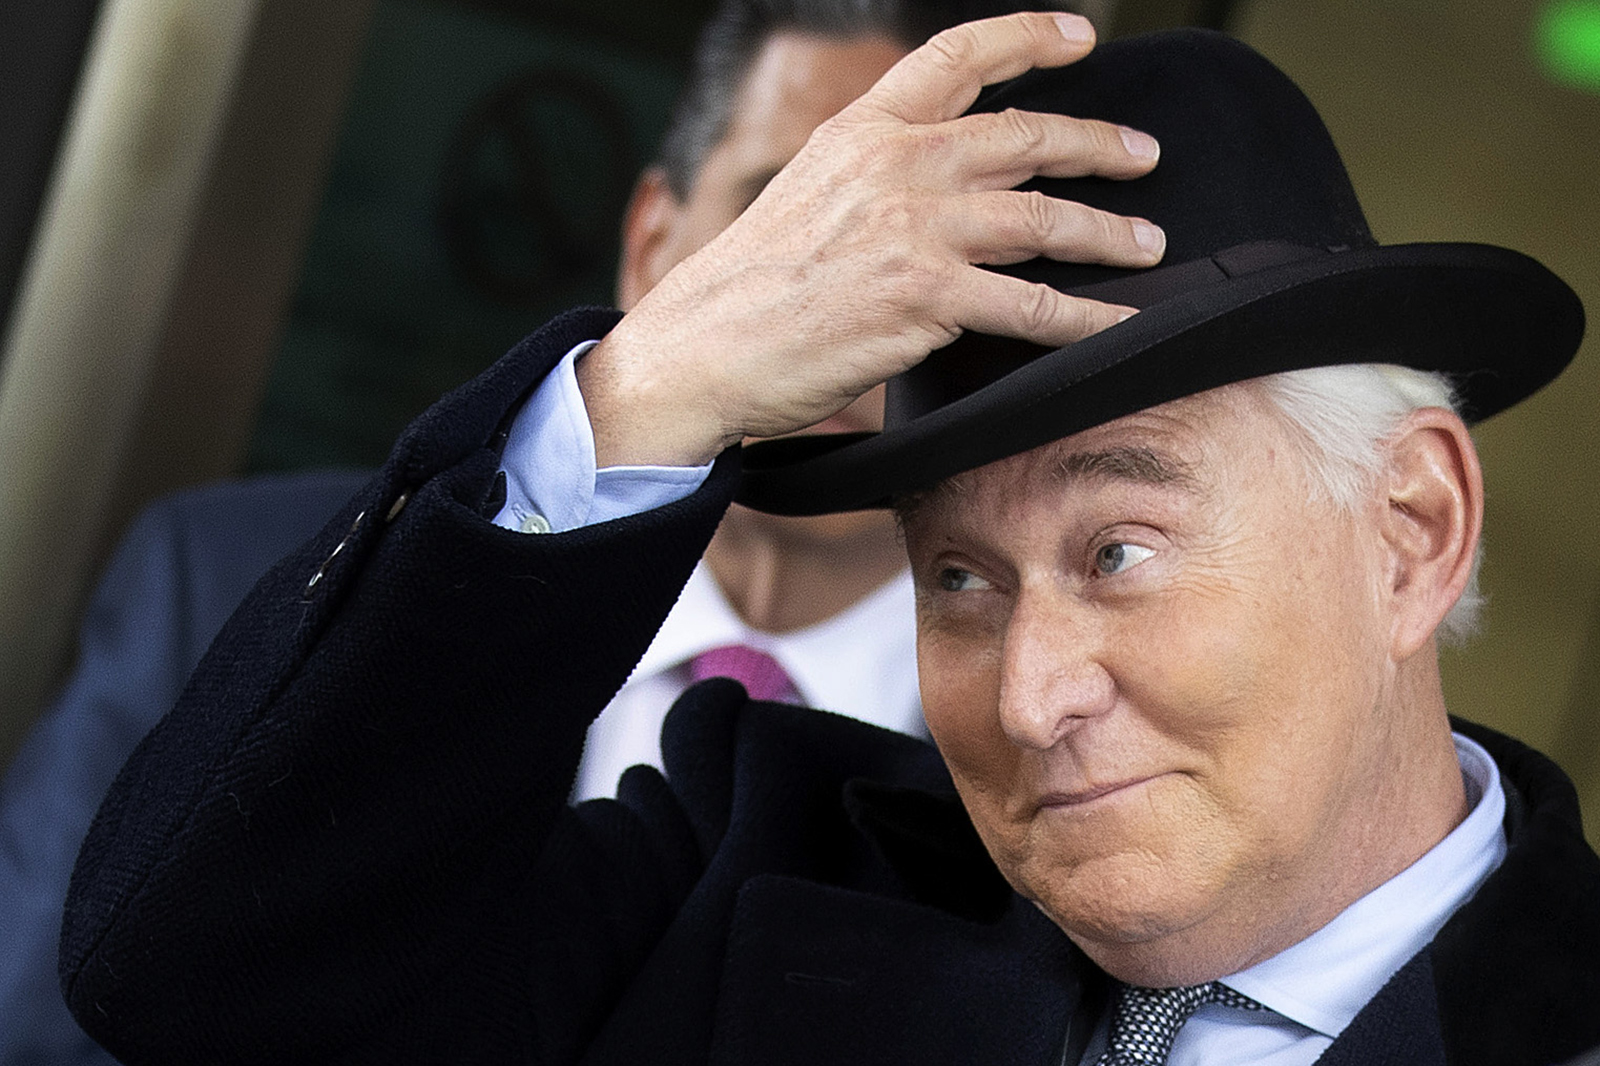 Roger Stone ordered to report to prison by June 30